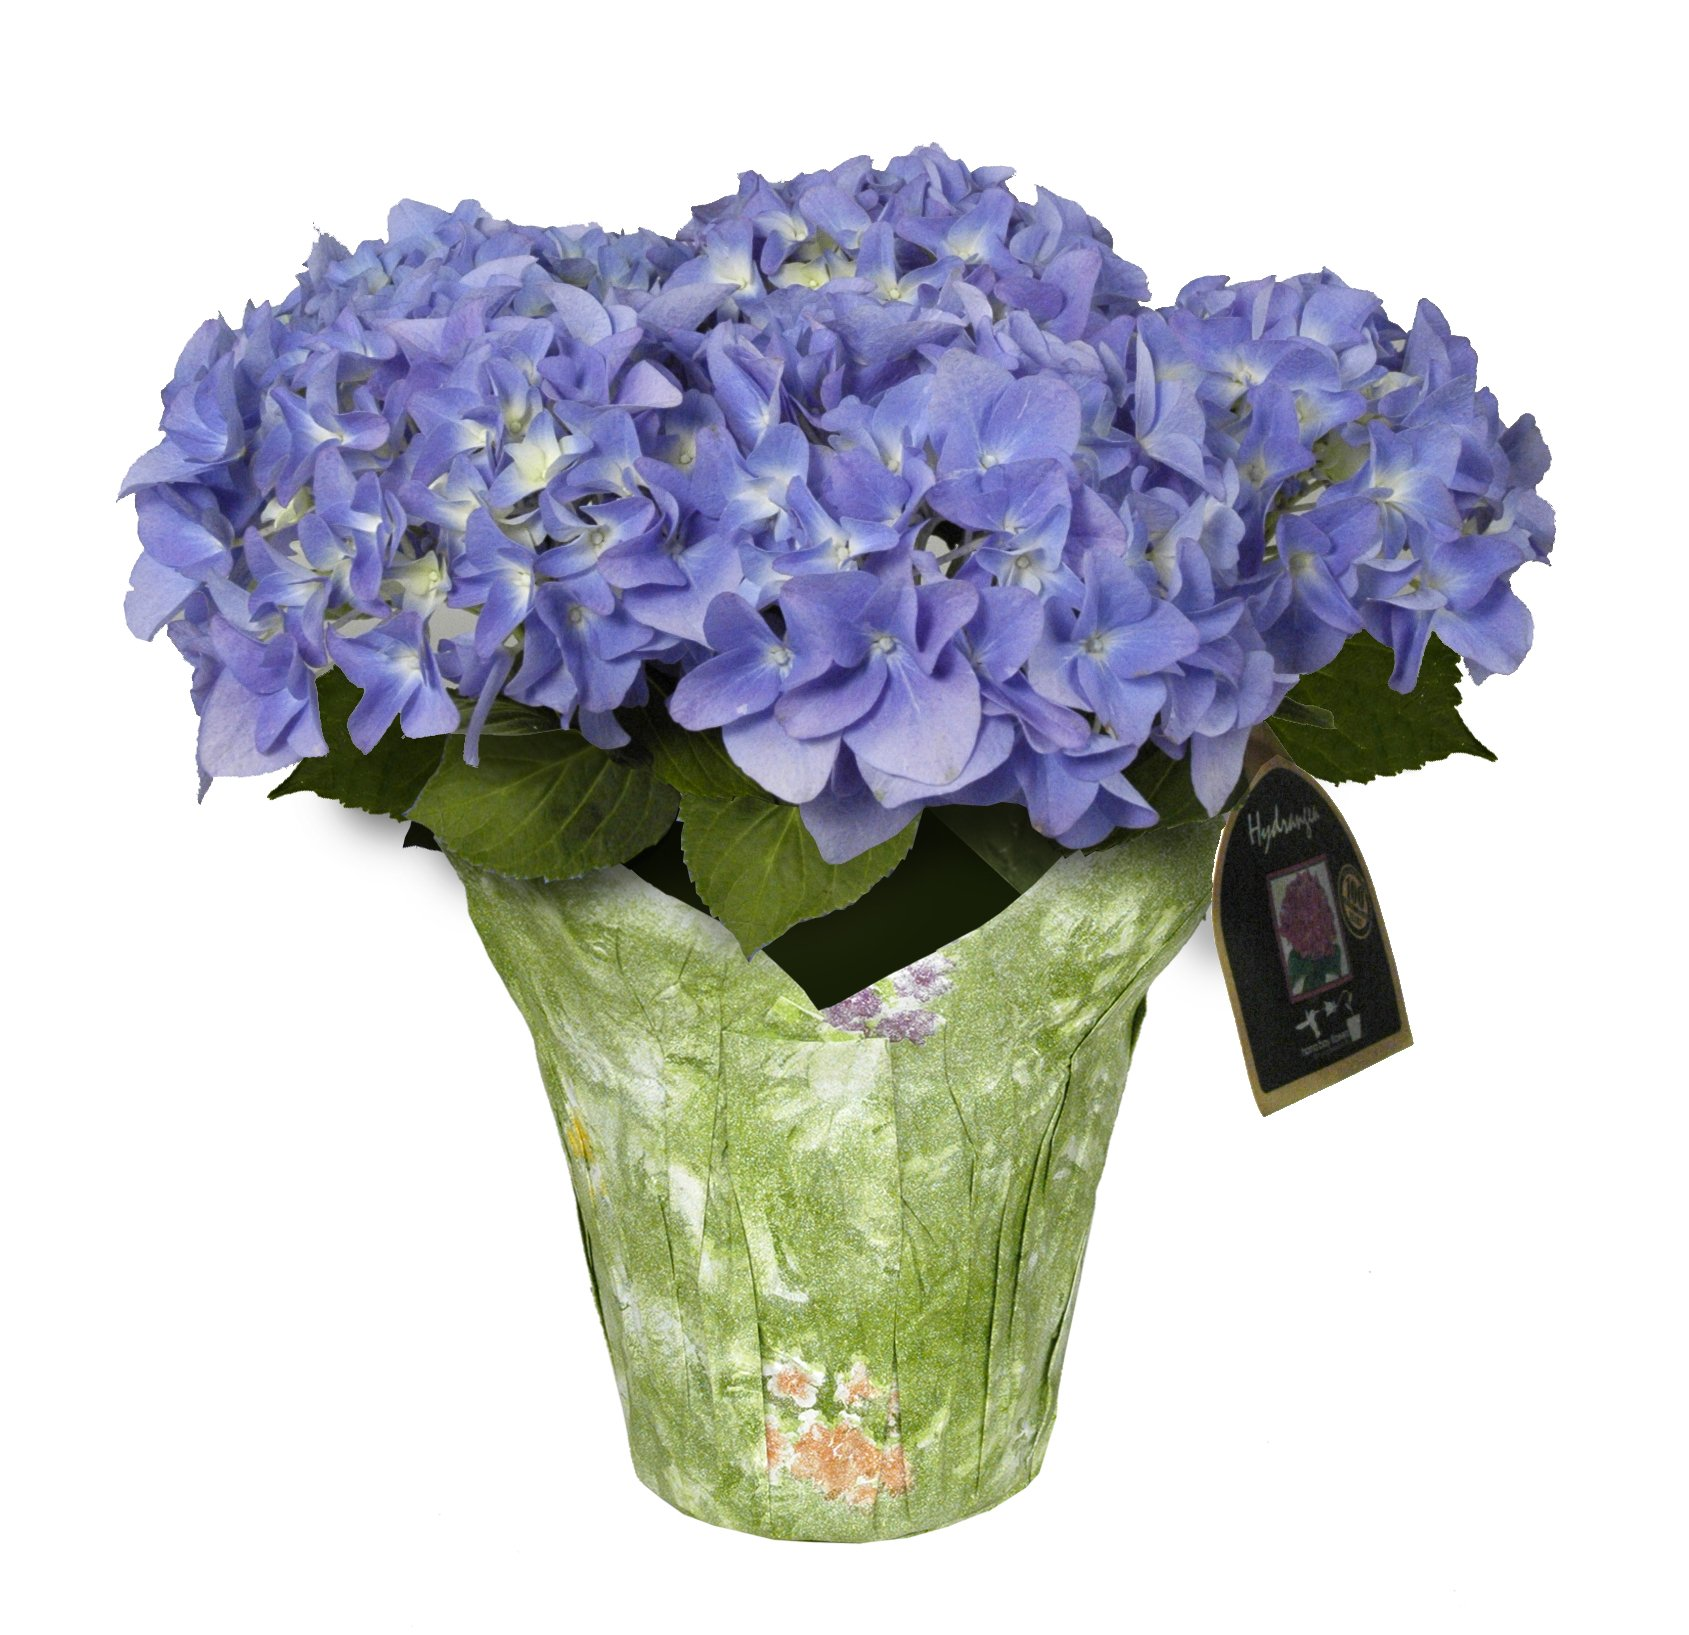 hana bay flowers 5400.06 Hydrangea Blooming Plant, Blue by hana bay flowers (Image #1)